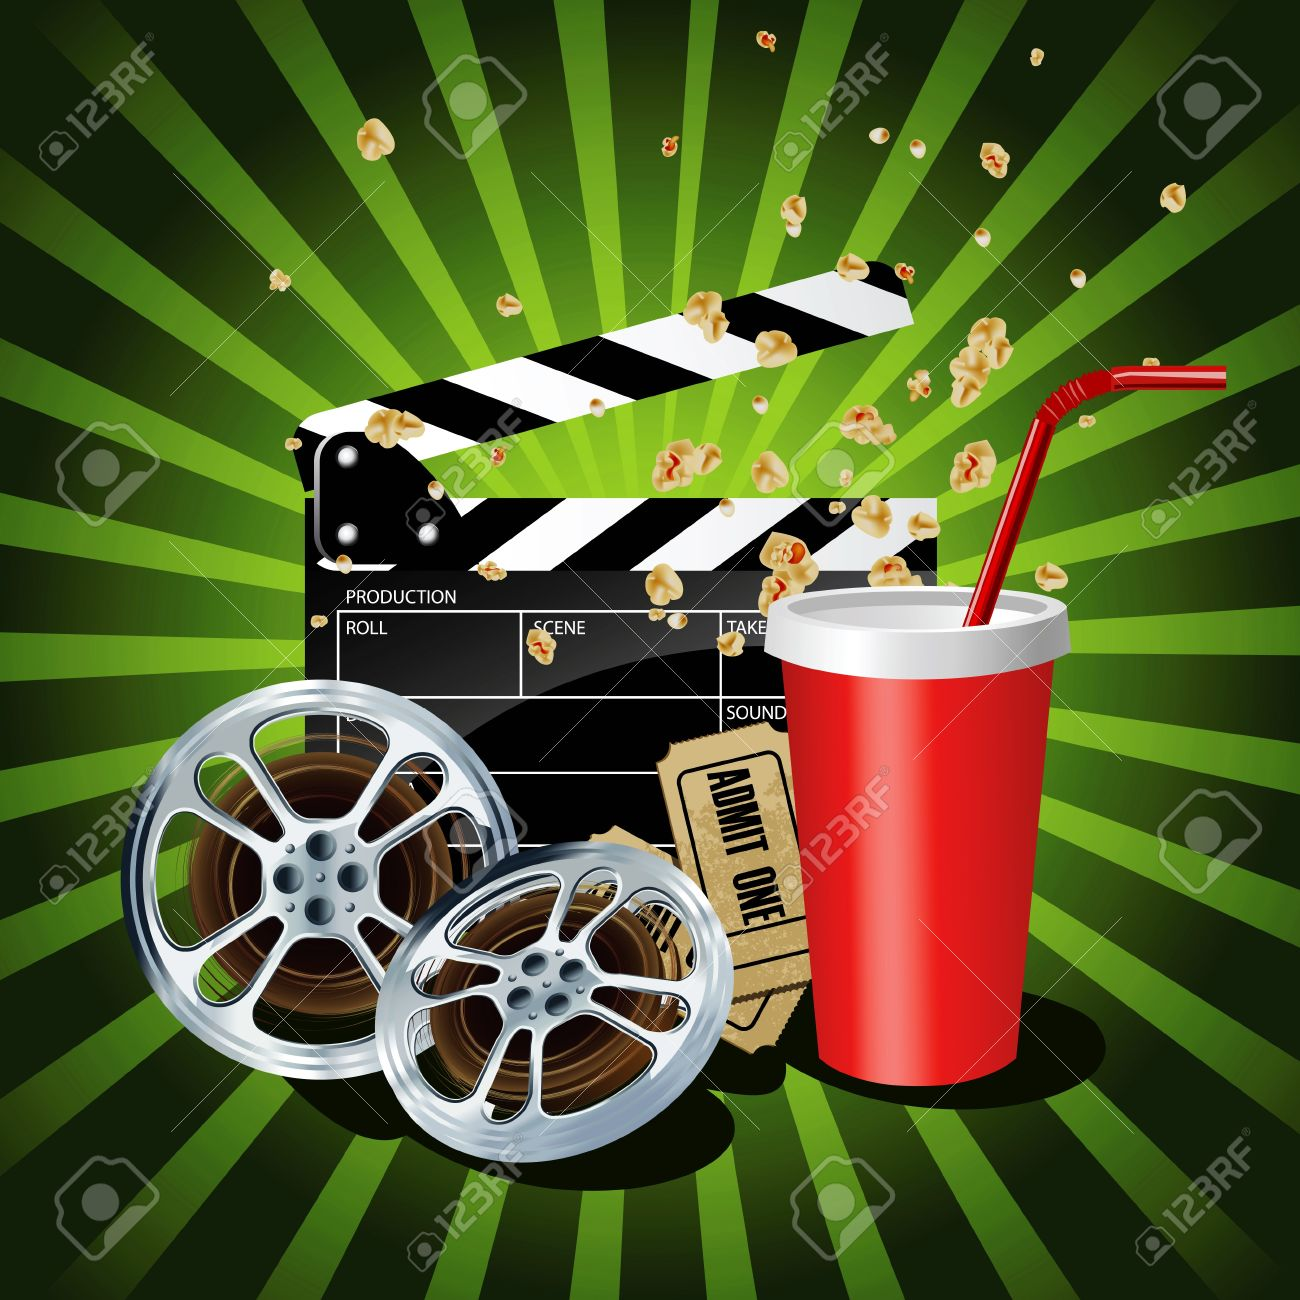 Illustration of  movie theme objects on green background. Stock Vector - 13626028